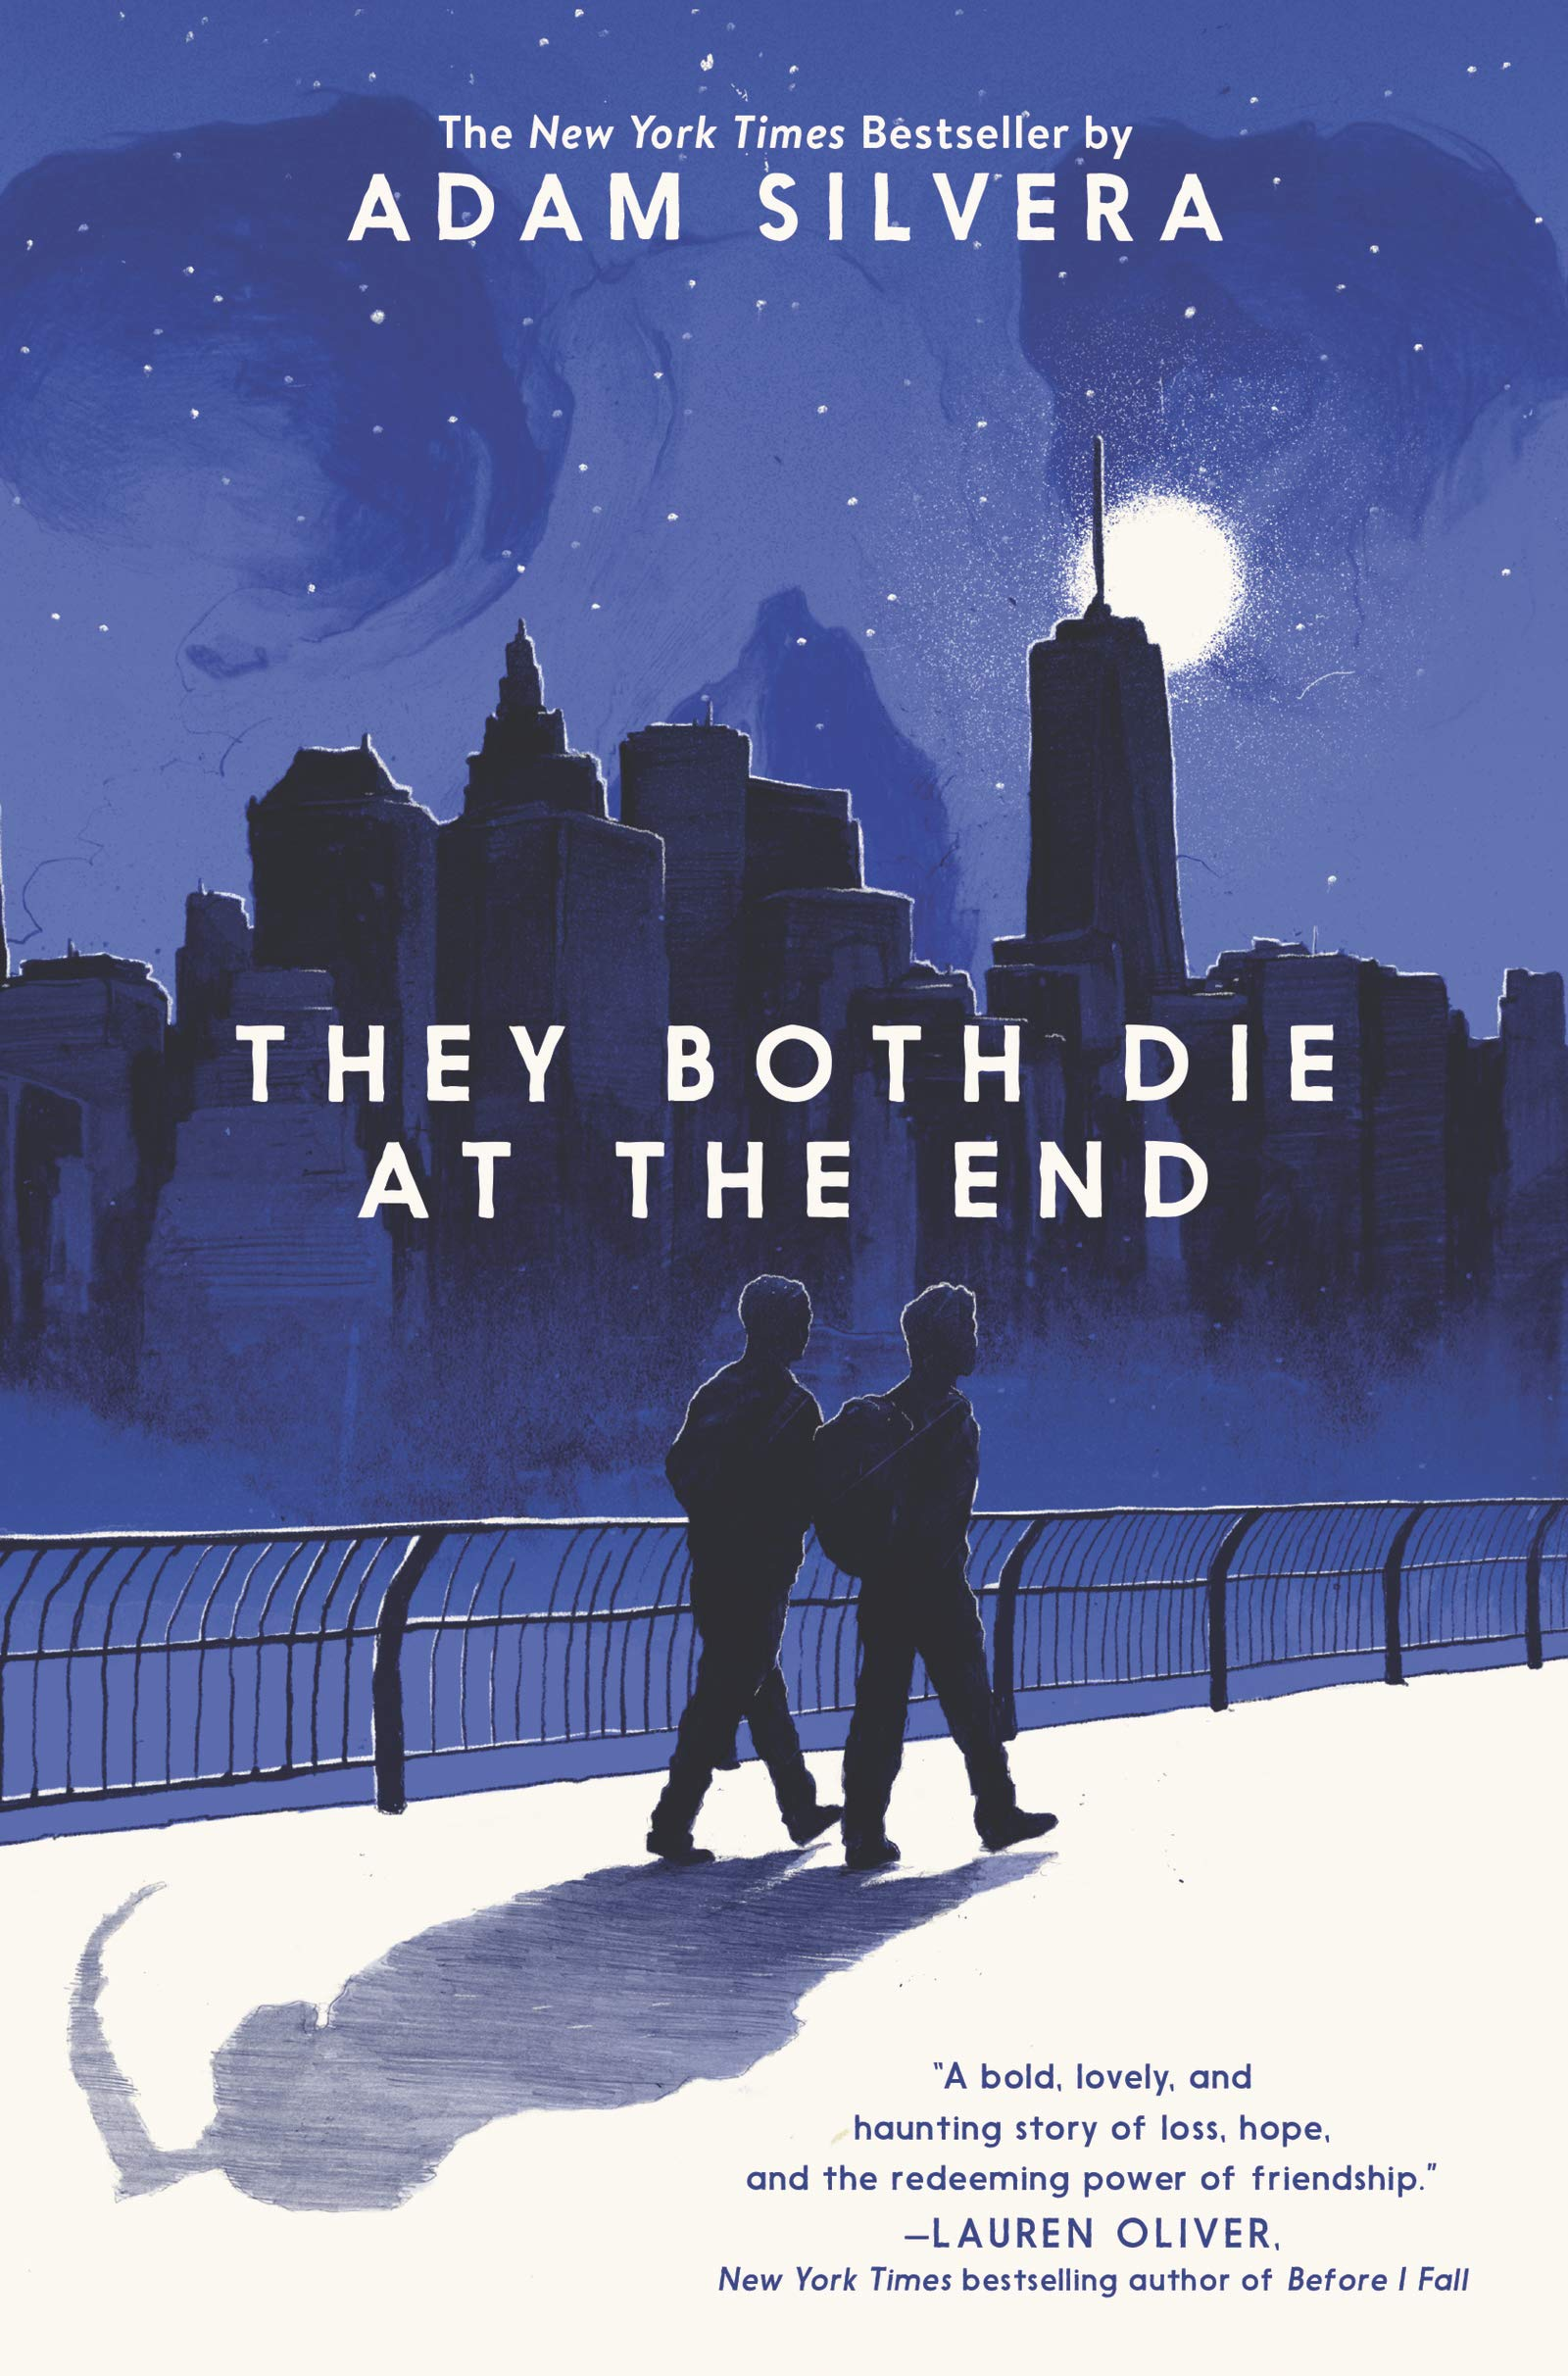 Amazon.com: They Both Die at the End (9780062457790): Silvera, Adam: Books